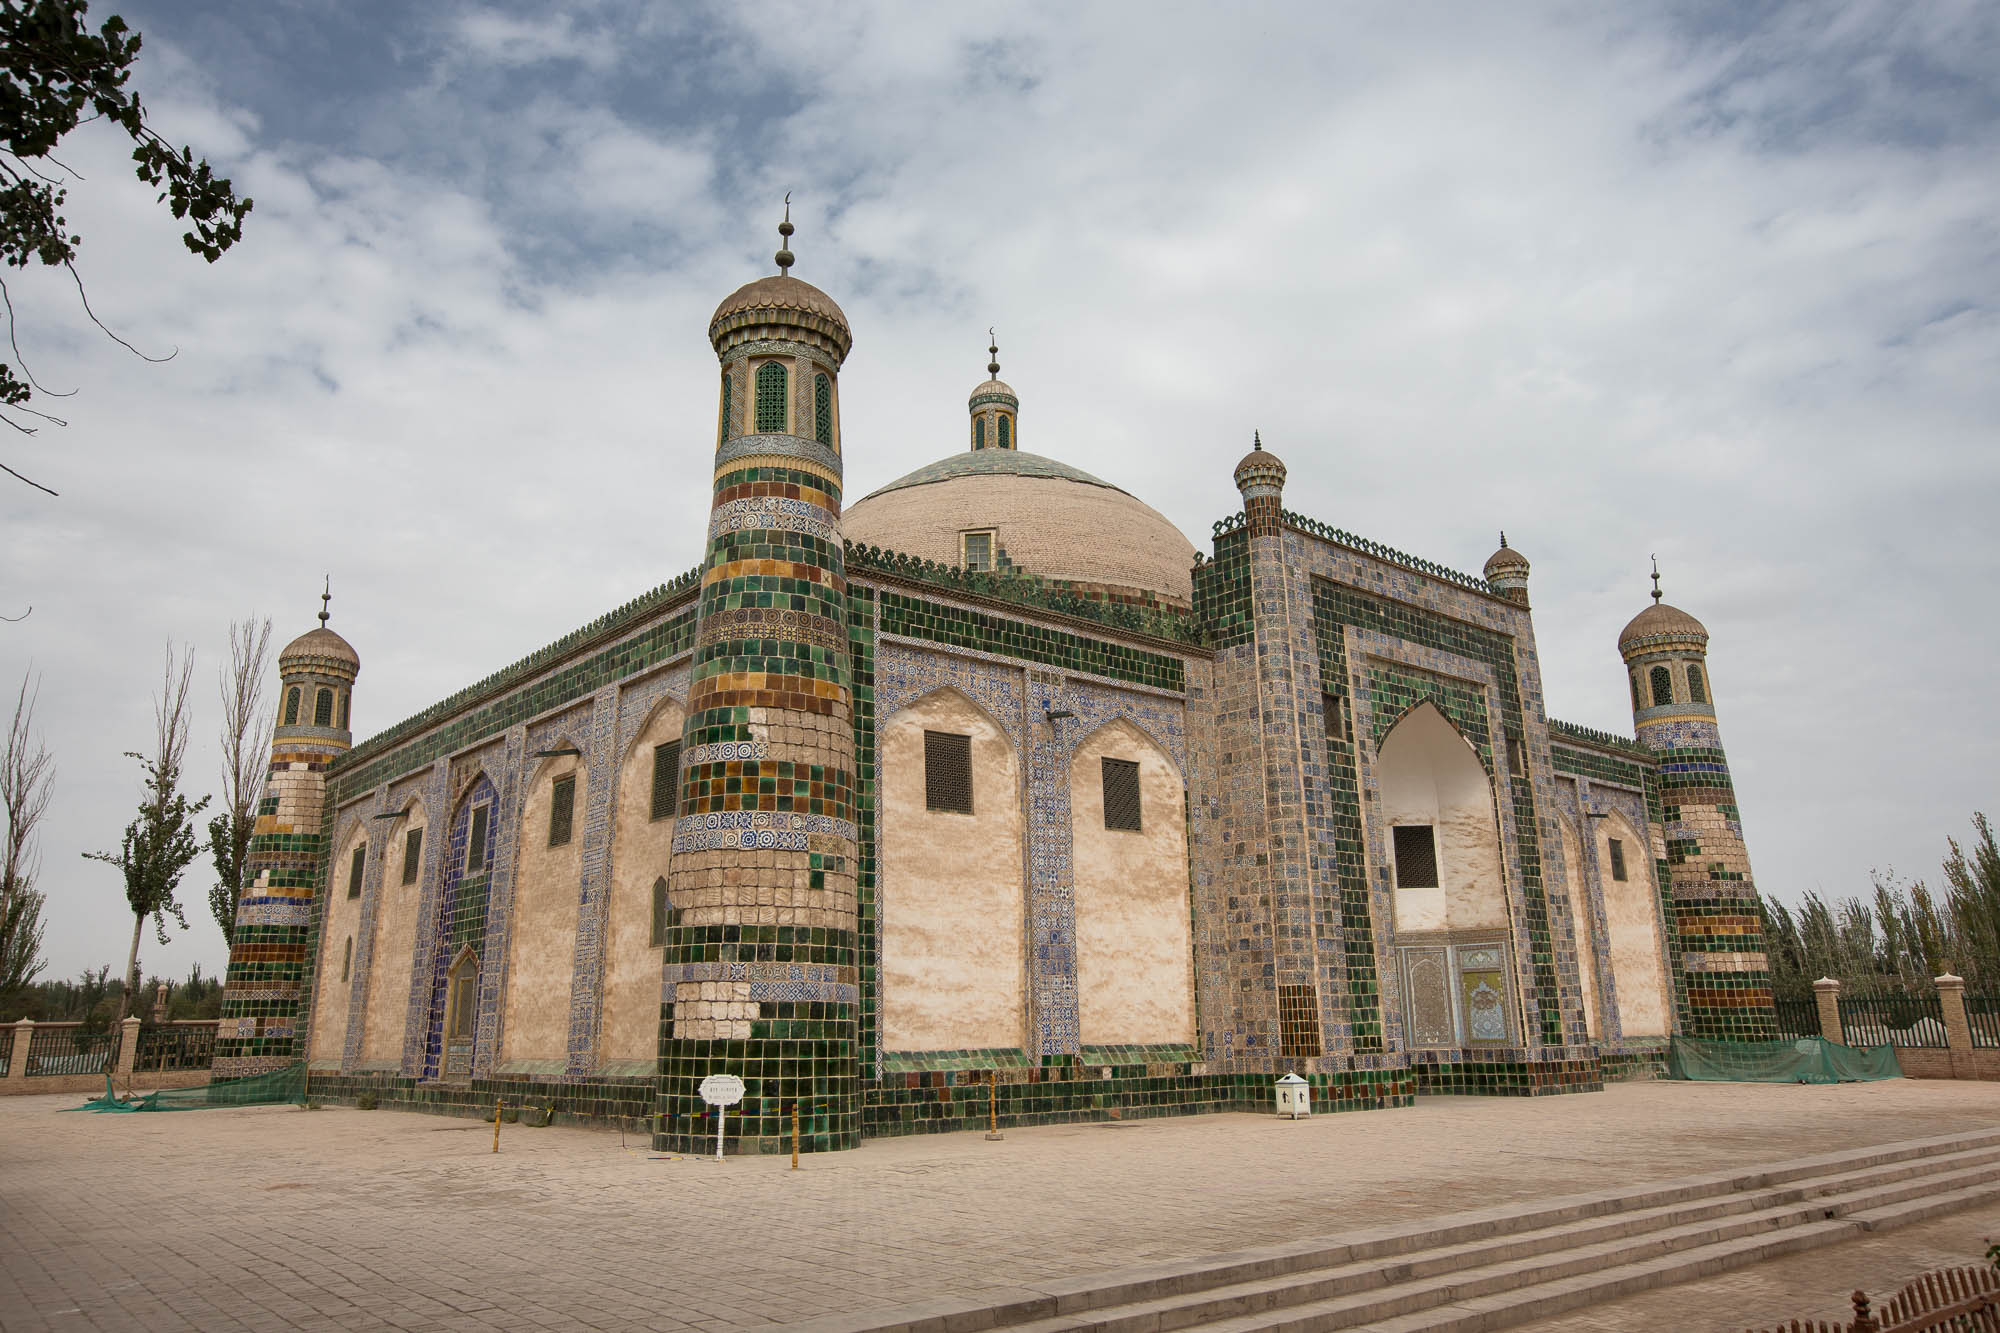 Mausoleum of Abakh Khoja